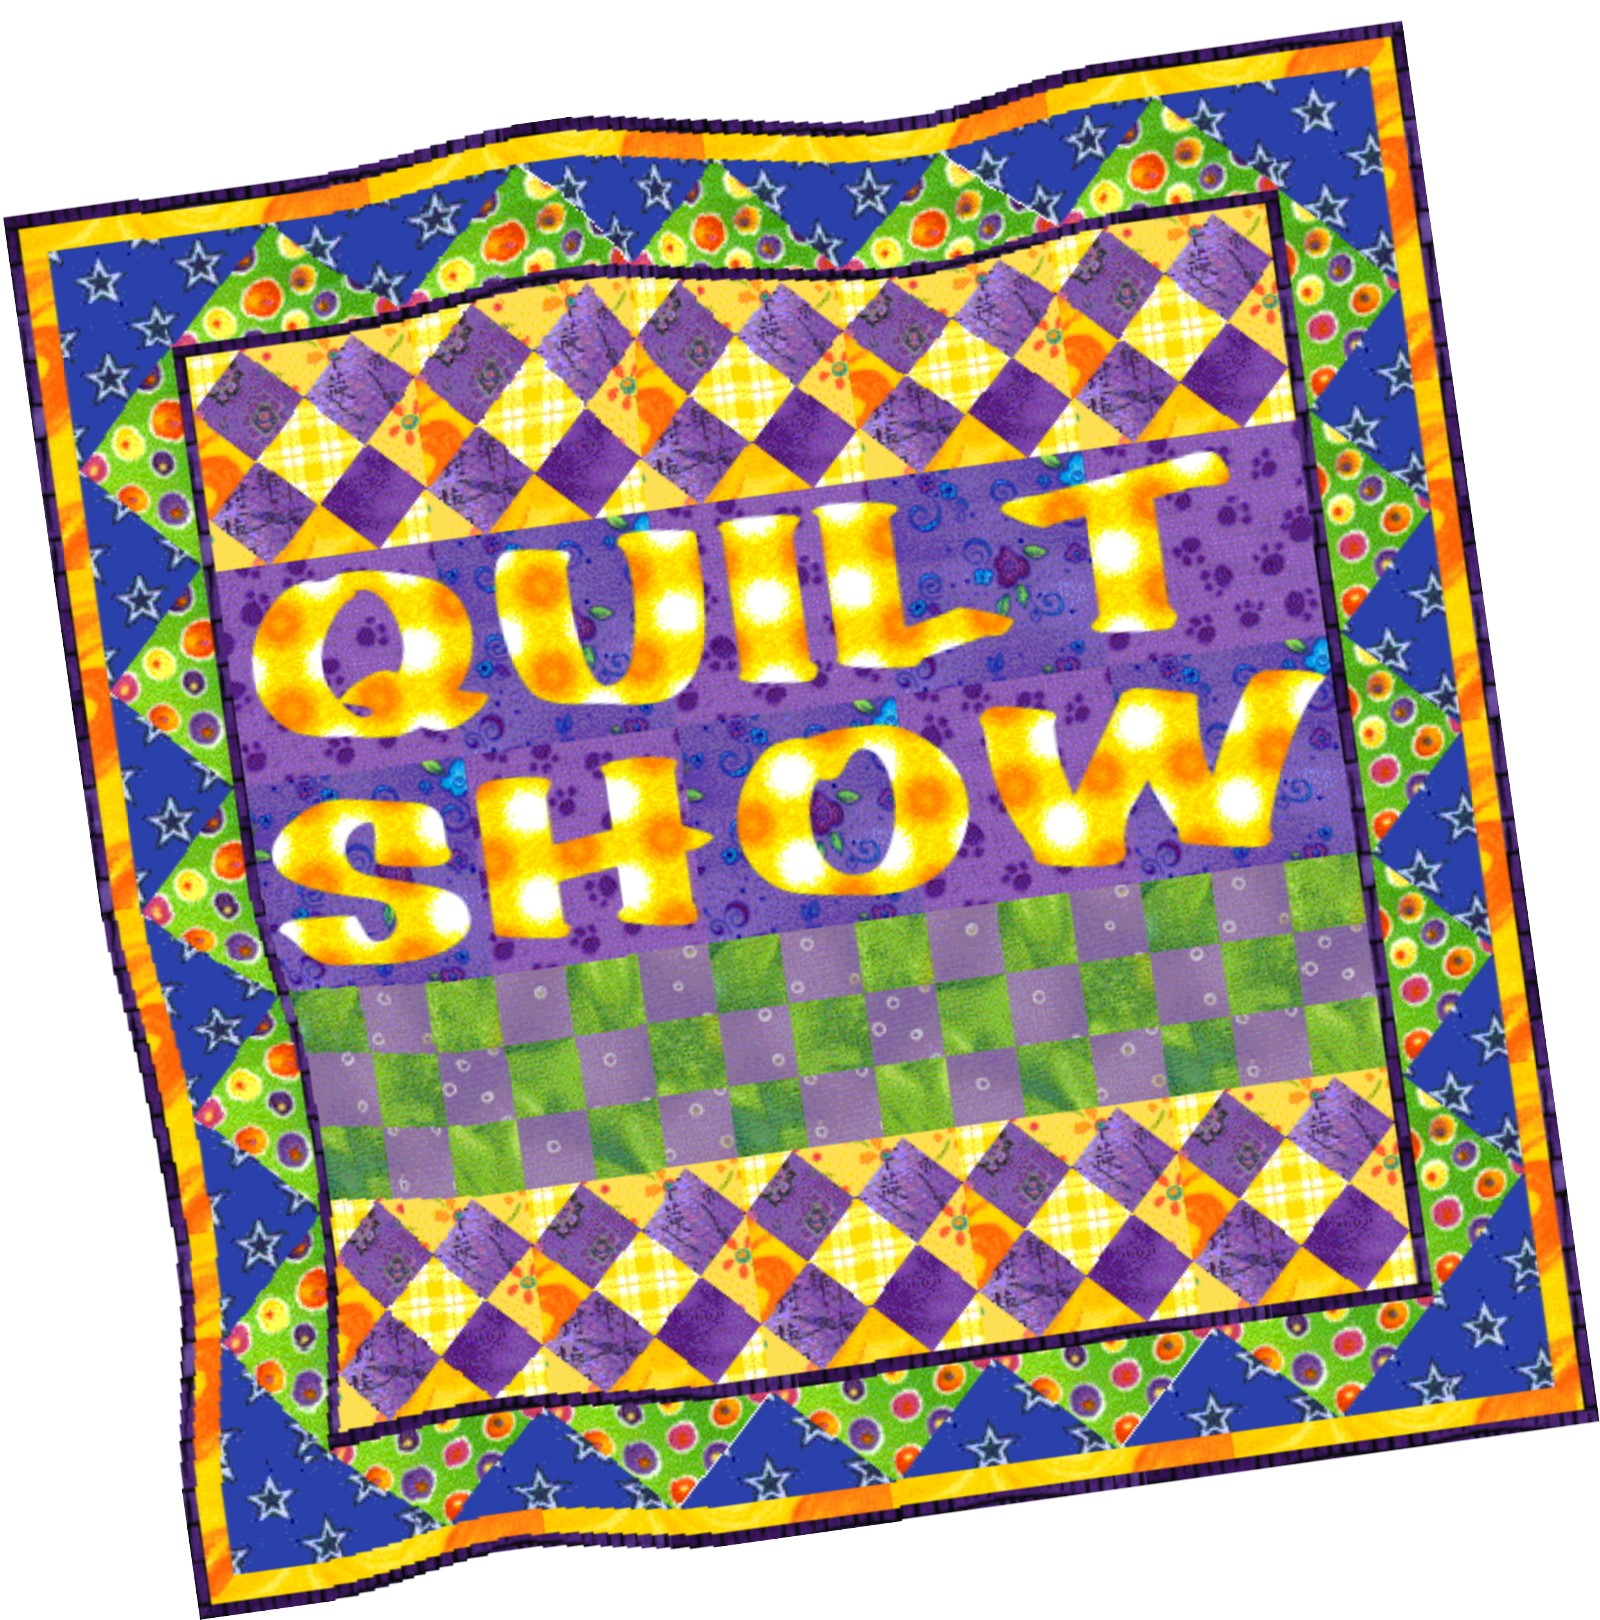 Quilts clipart banner transparent library Free Quilting Cliparts, Download Free Clip Art, Free Clip ... banner transparent library